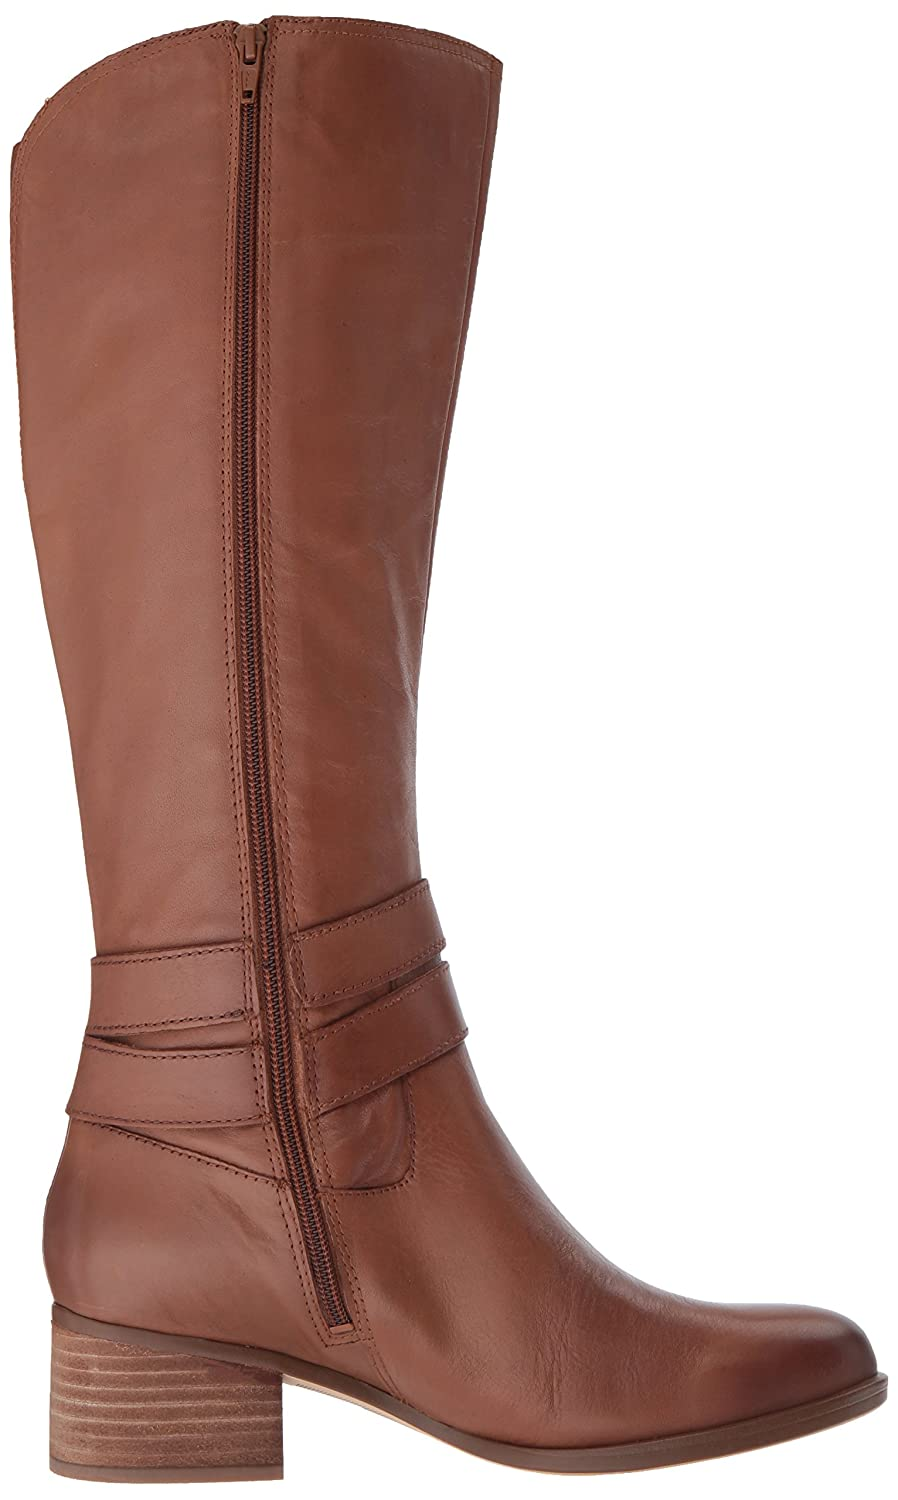 Naturalizer Women's Dev Wc US|Saddle Riding Boot B0728GLMGY 8.5 2W US|Saddle Wc 200 1c06c7